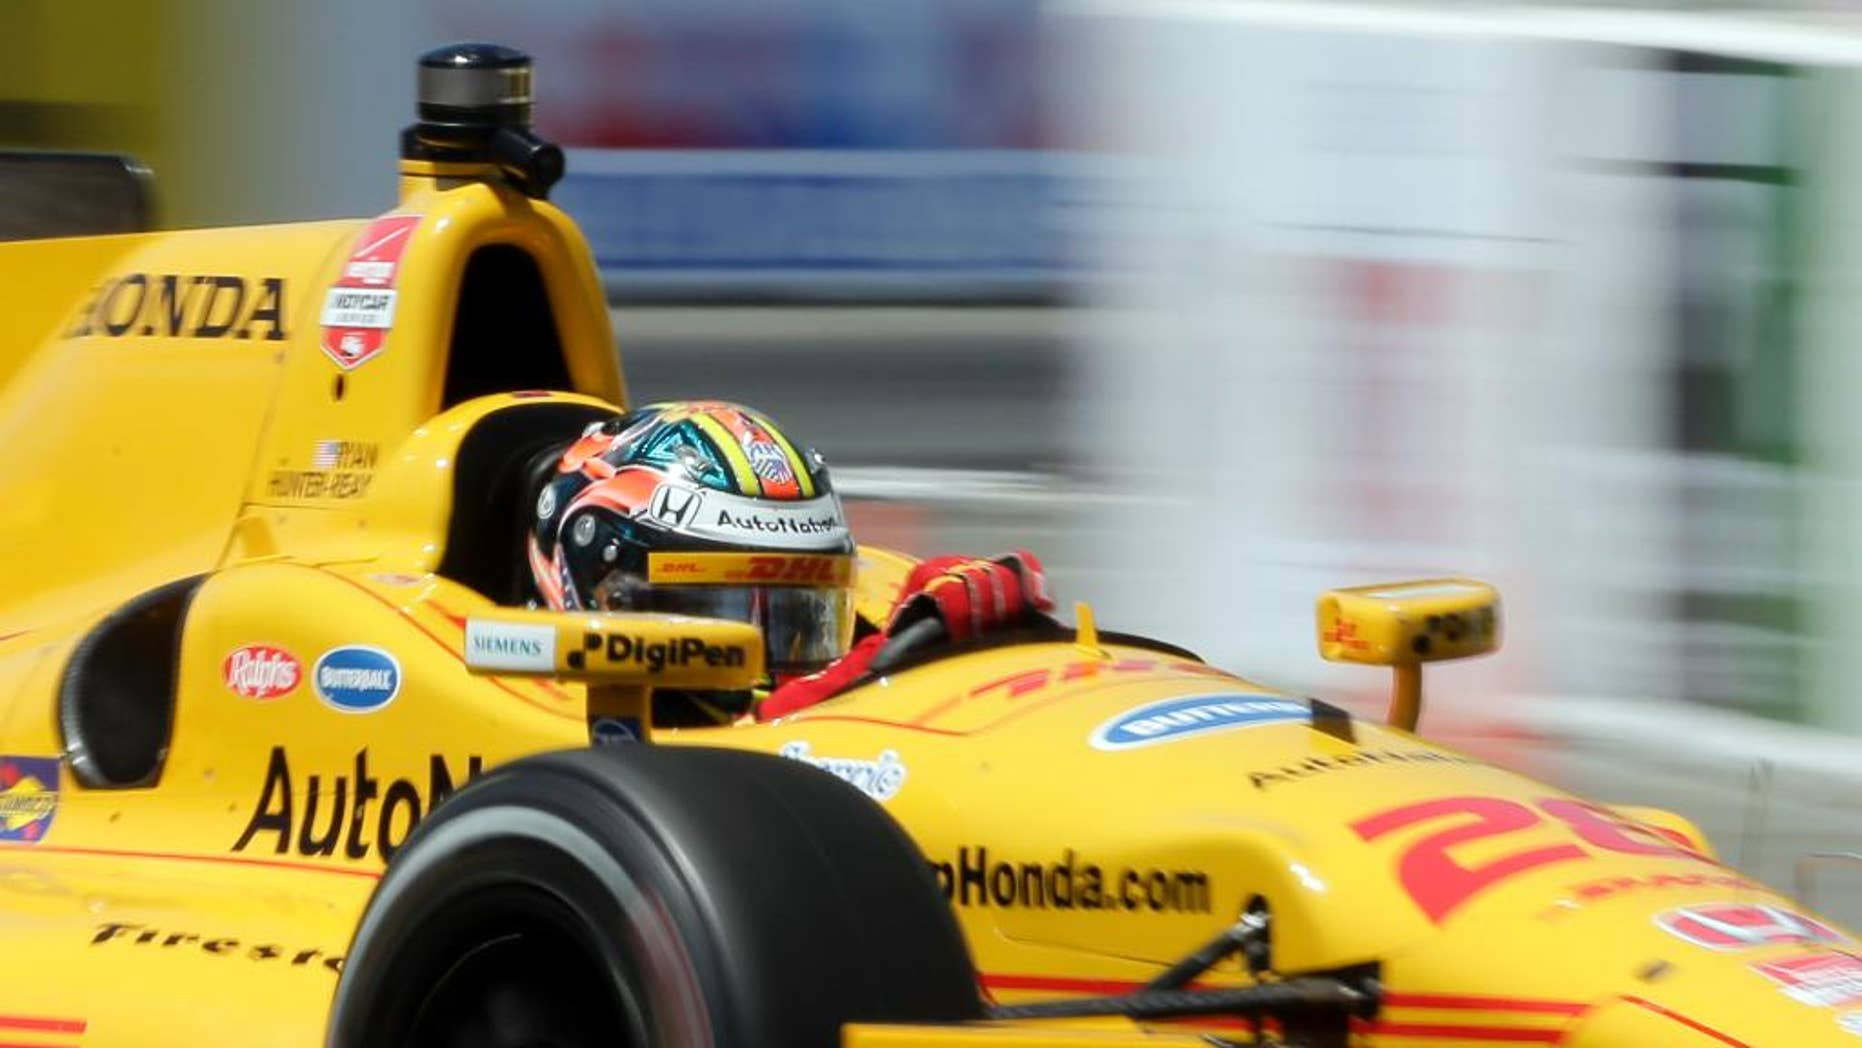 FILE - In this April 17, 2015, file photo, Ryan Hunter-Reay drives during a practice run for the IndyCar race at the Toyota Grand Prix of Long Beach in Long Beach, Calif. The two-time defending race champion returns to Alabama this weekend after a rough start that included a penalty from IndyCar with which he adamantly disagrees. (AP Photo/Chris Carlson, File)